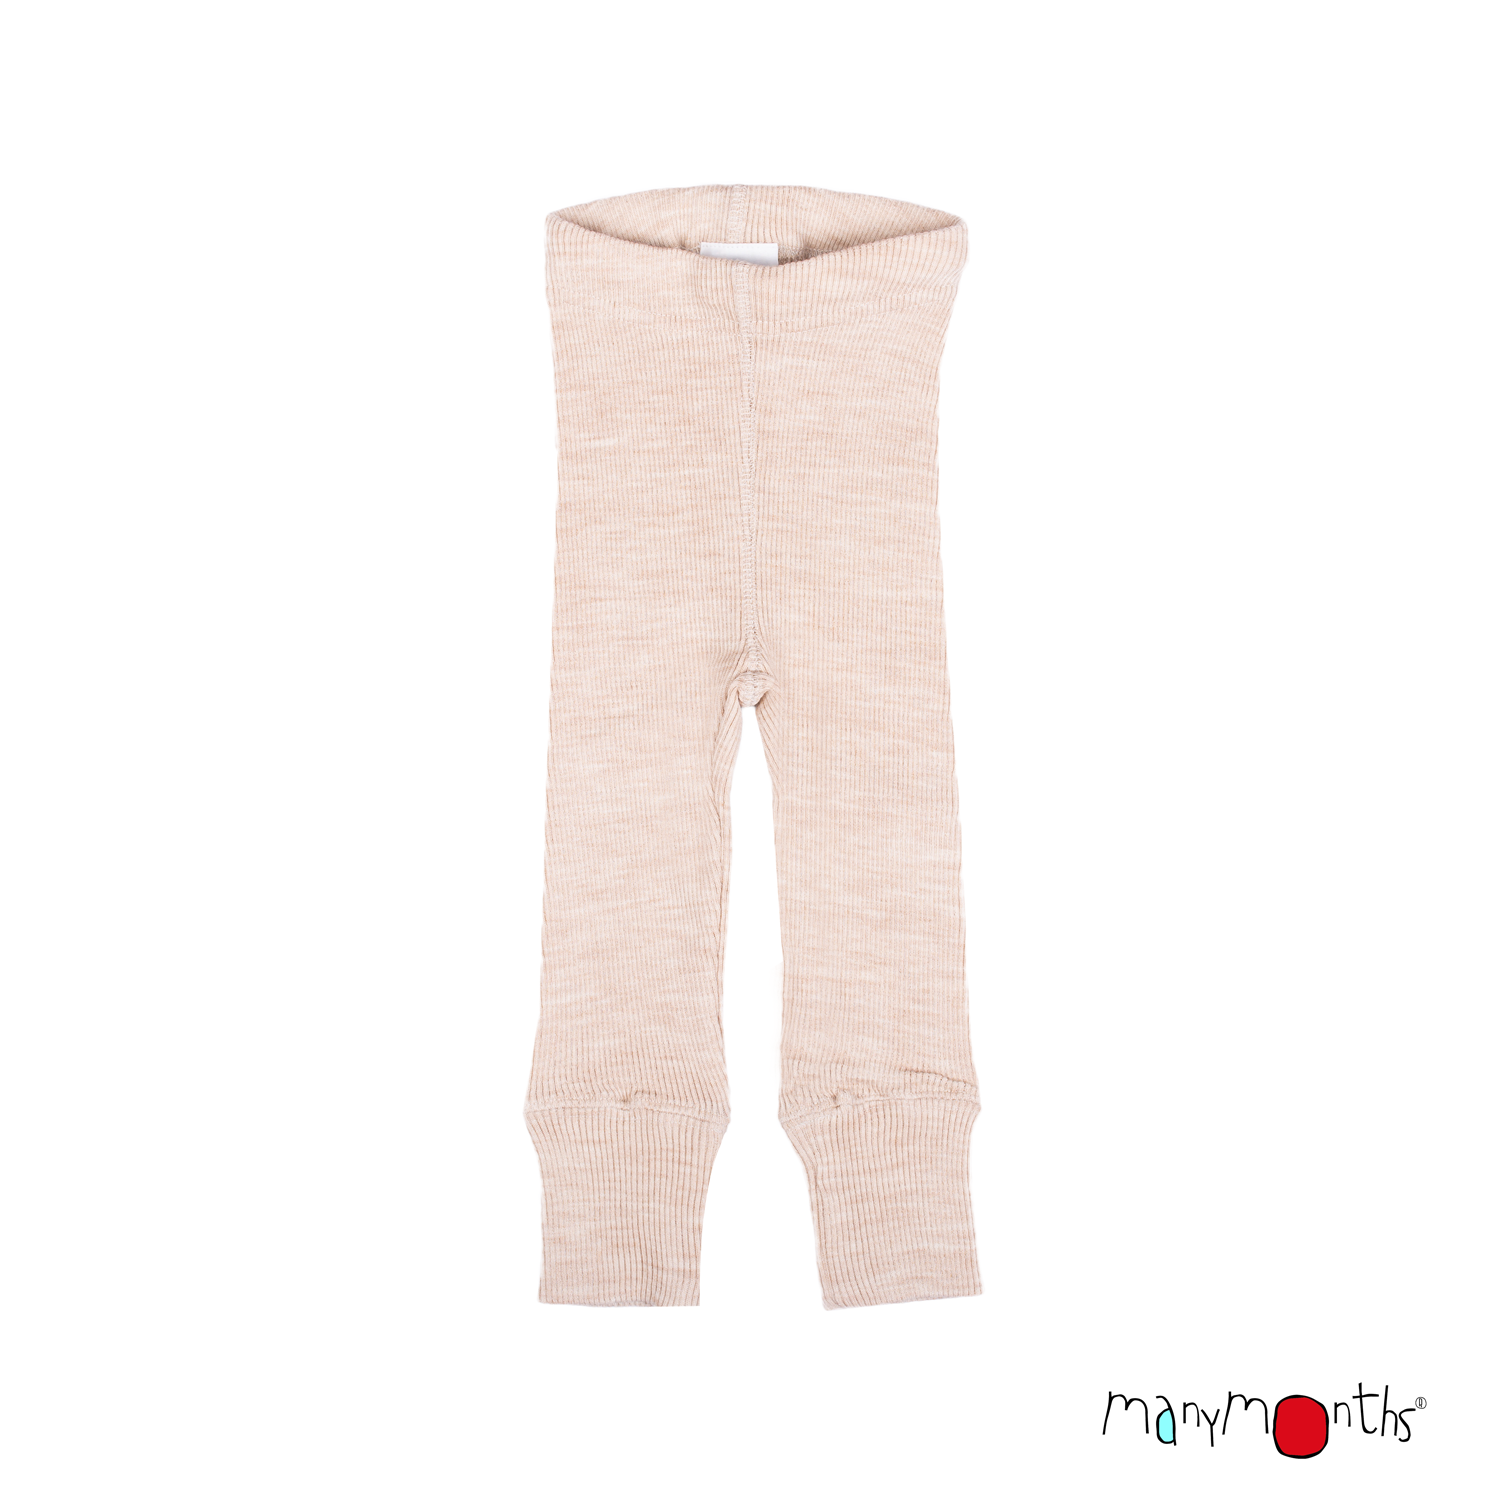 ManyMonths Natural Woollies Unisex Leggings